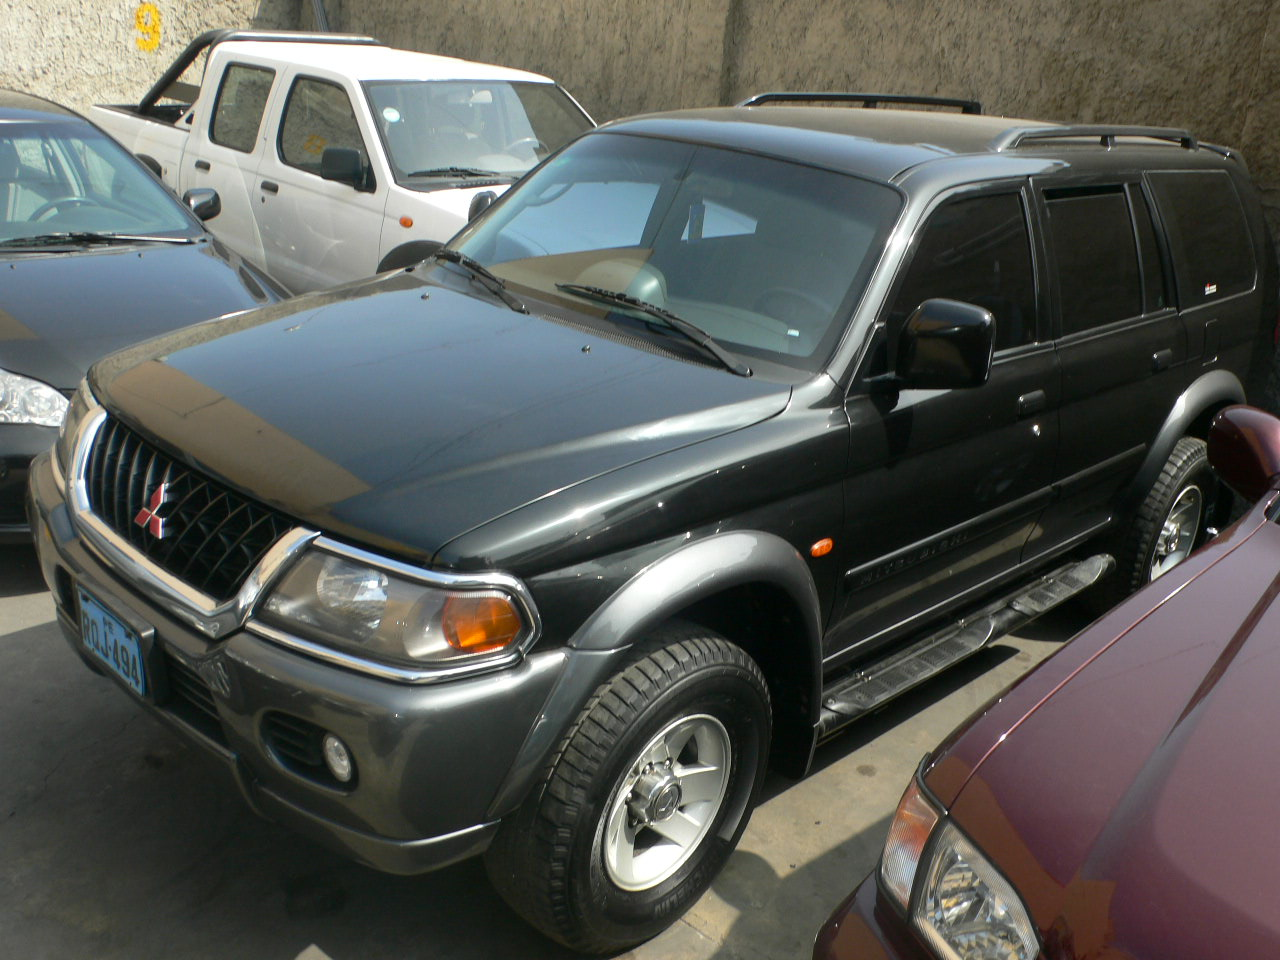 Vendo mitsubishi nativa 2002 timon original